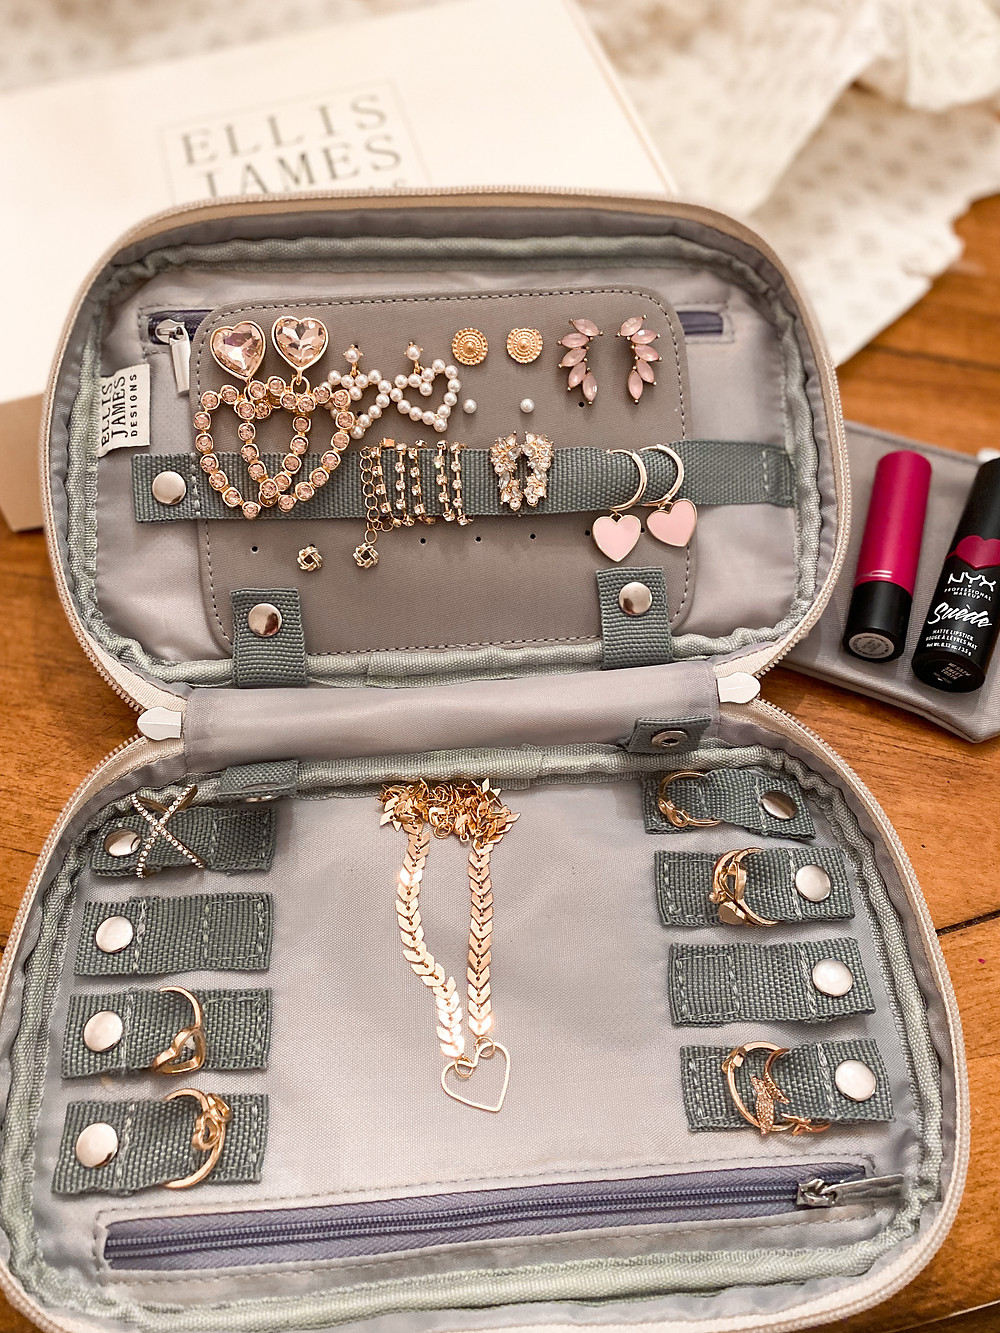 Ellis James Designs Jewelry Bag, The Bleached Curl, Abby Graf